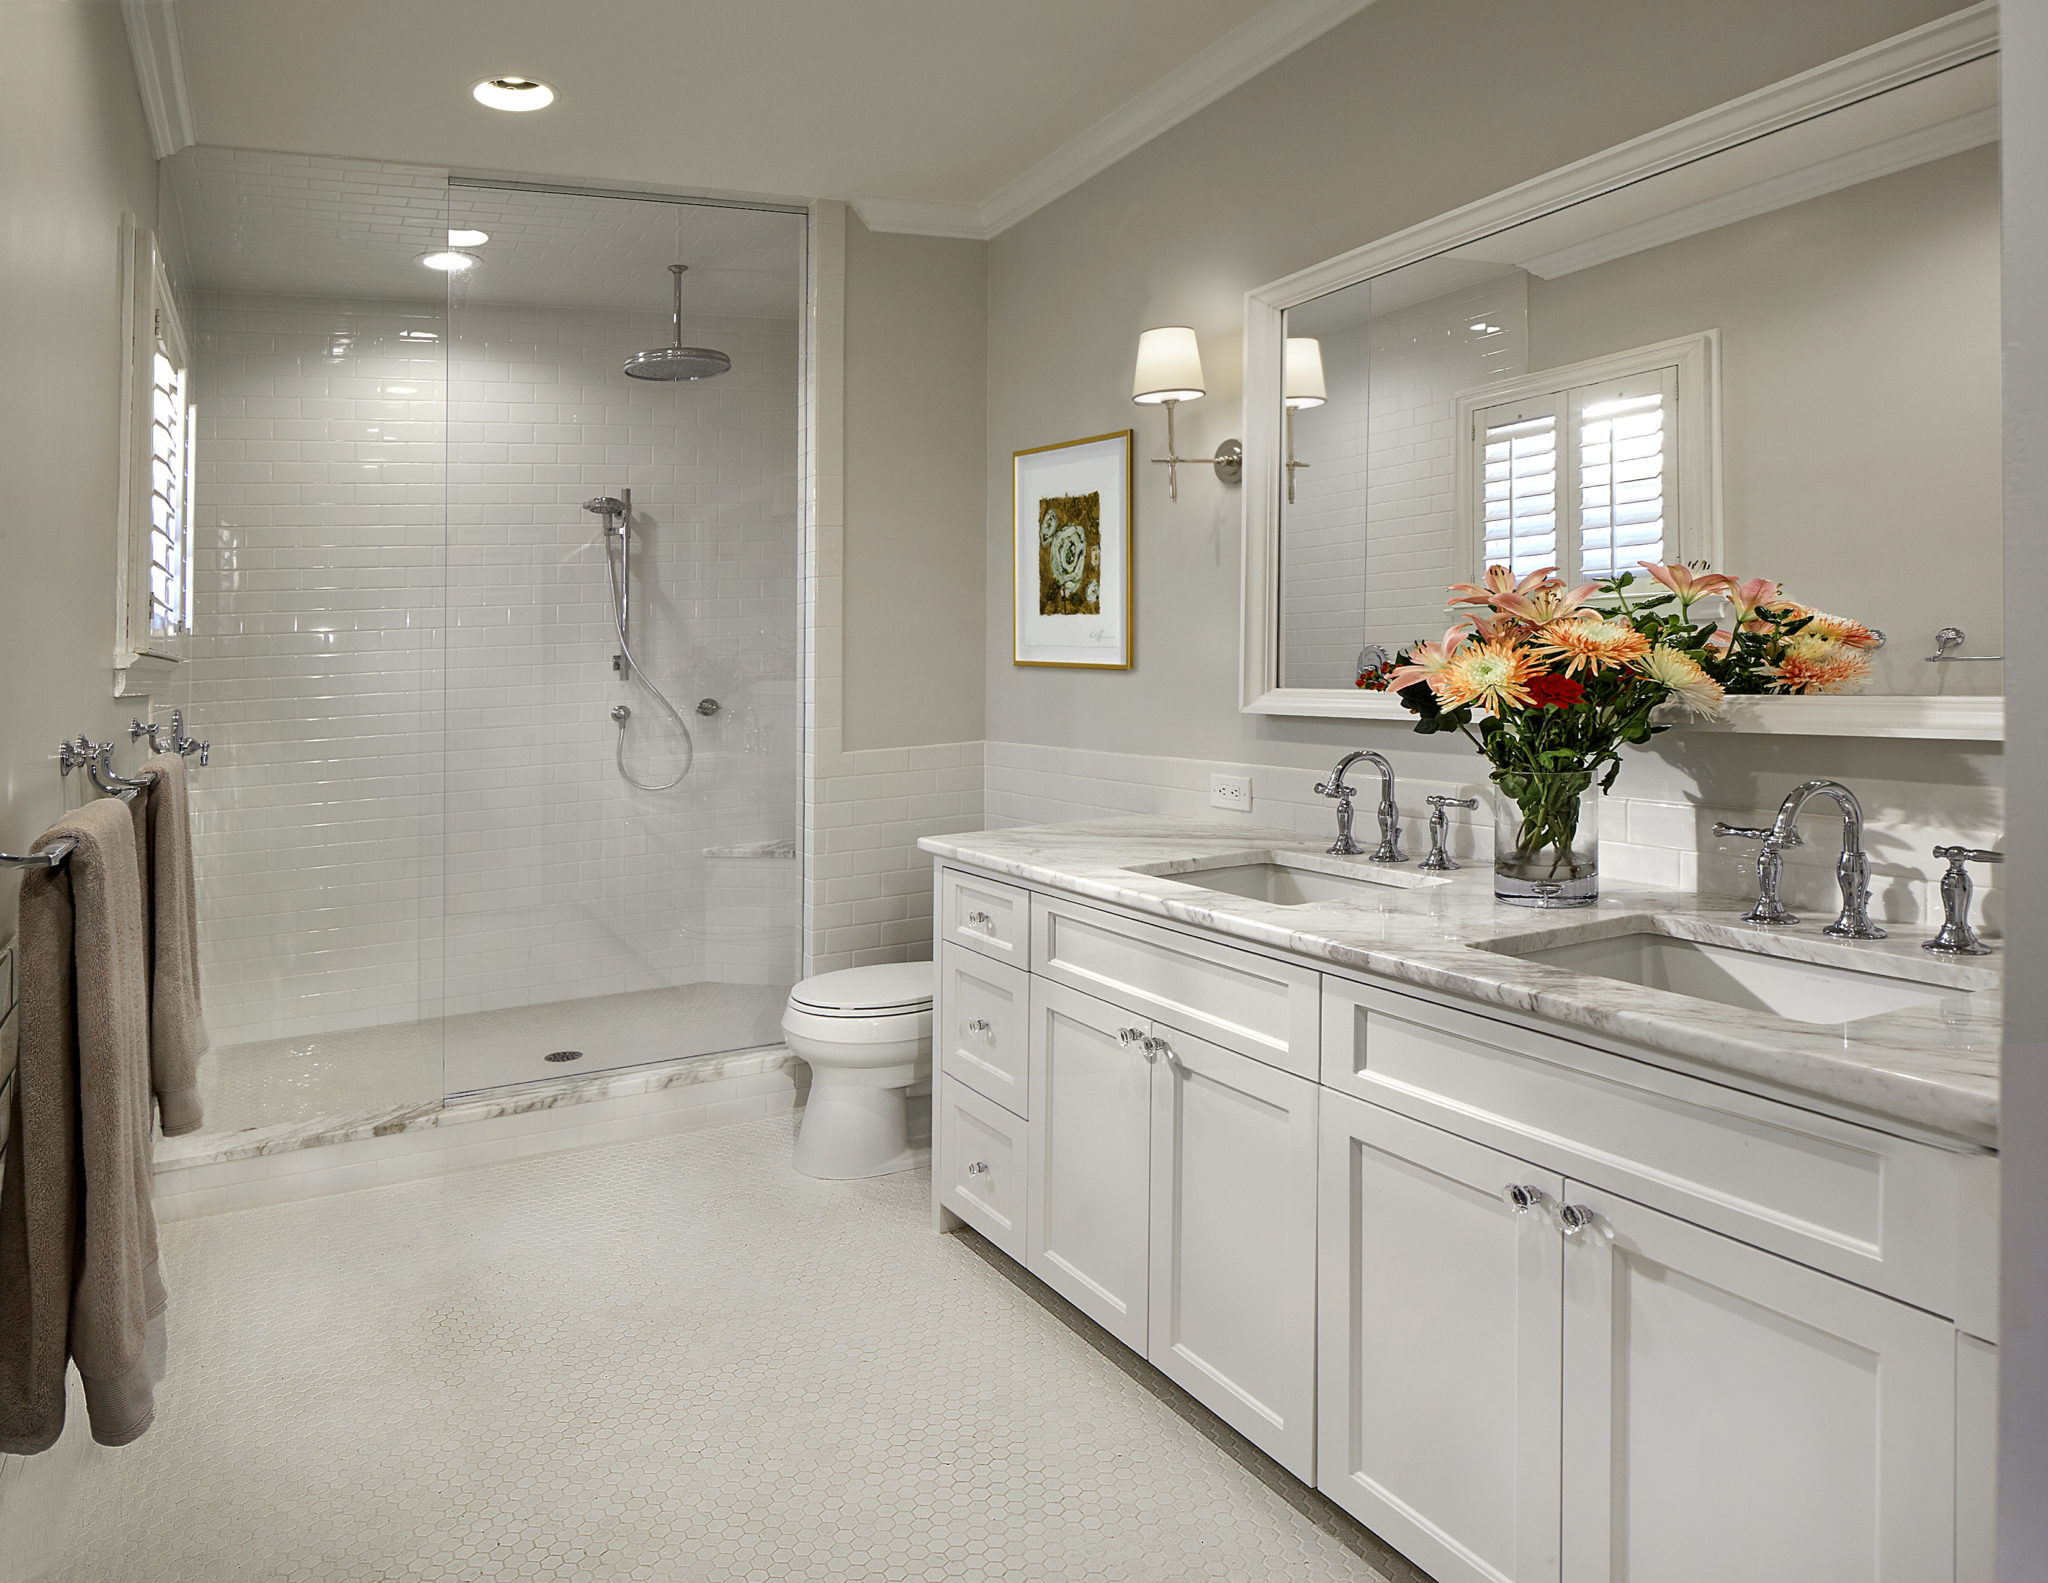 Neutral full bath with rain shower head